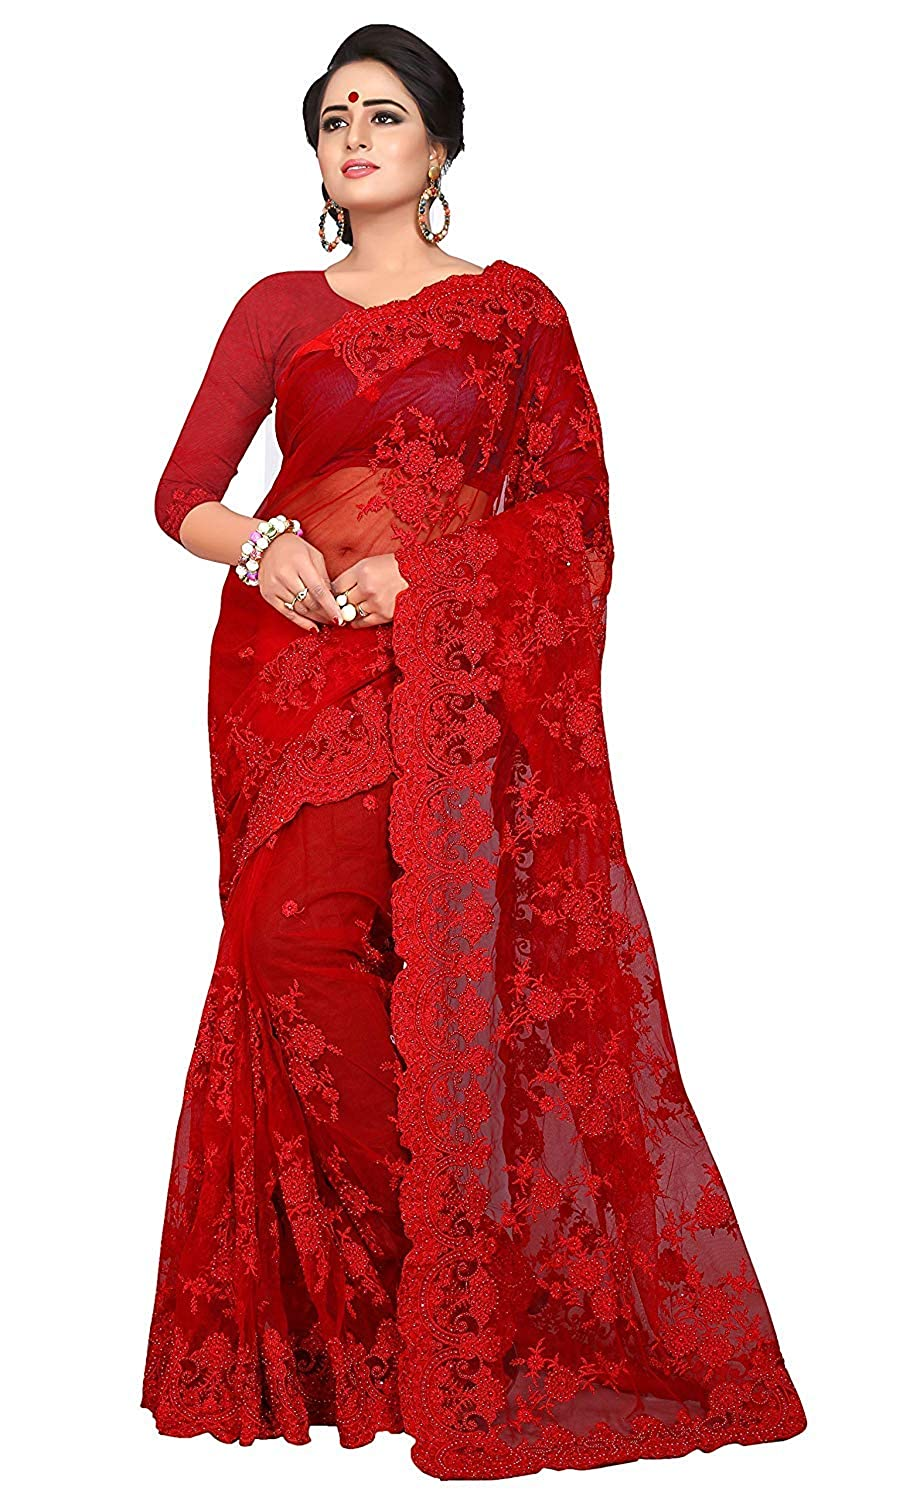 68030dac1c Saree For Women Hot New Releases Most Wished For Most Gifted Party Wear  Saree For Women Hot New Releases Most Wished For Most Gifted Party Wear  Half Sarees ...